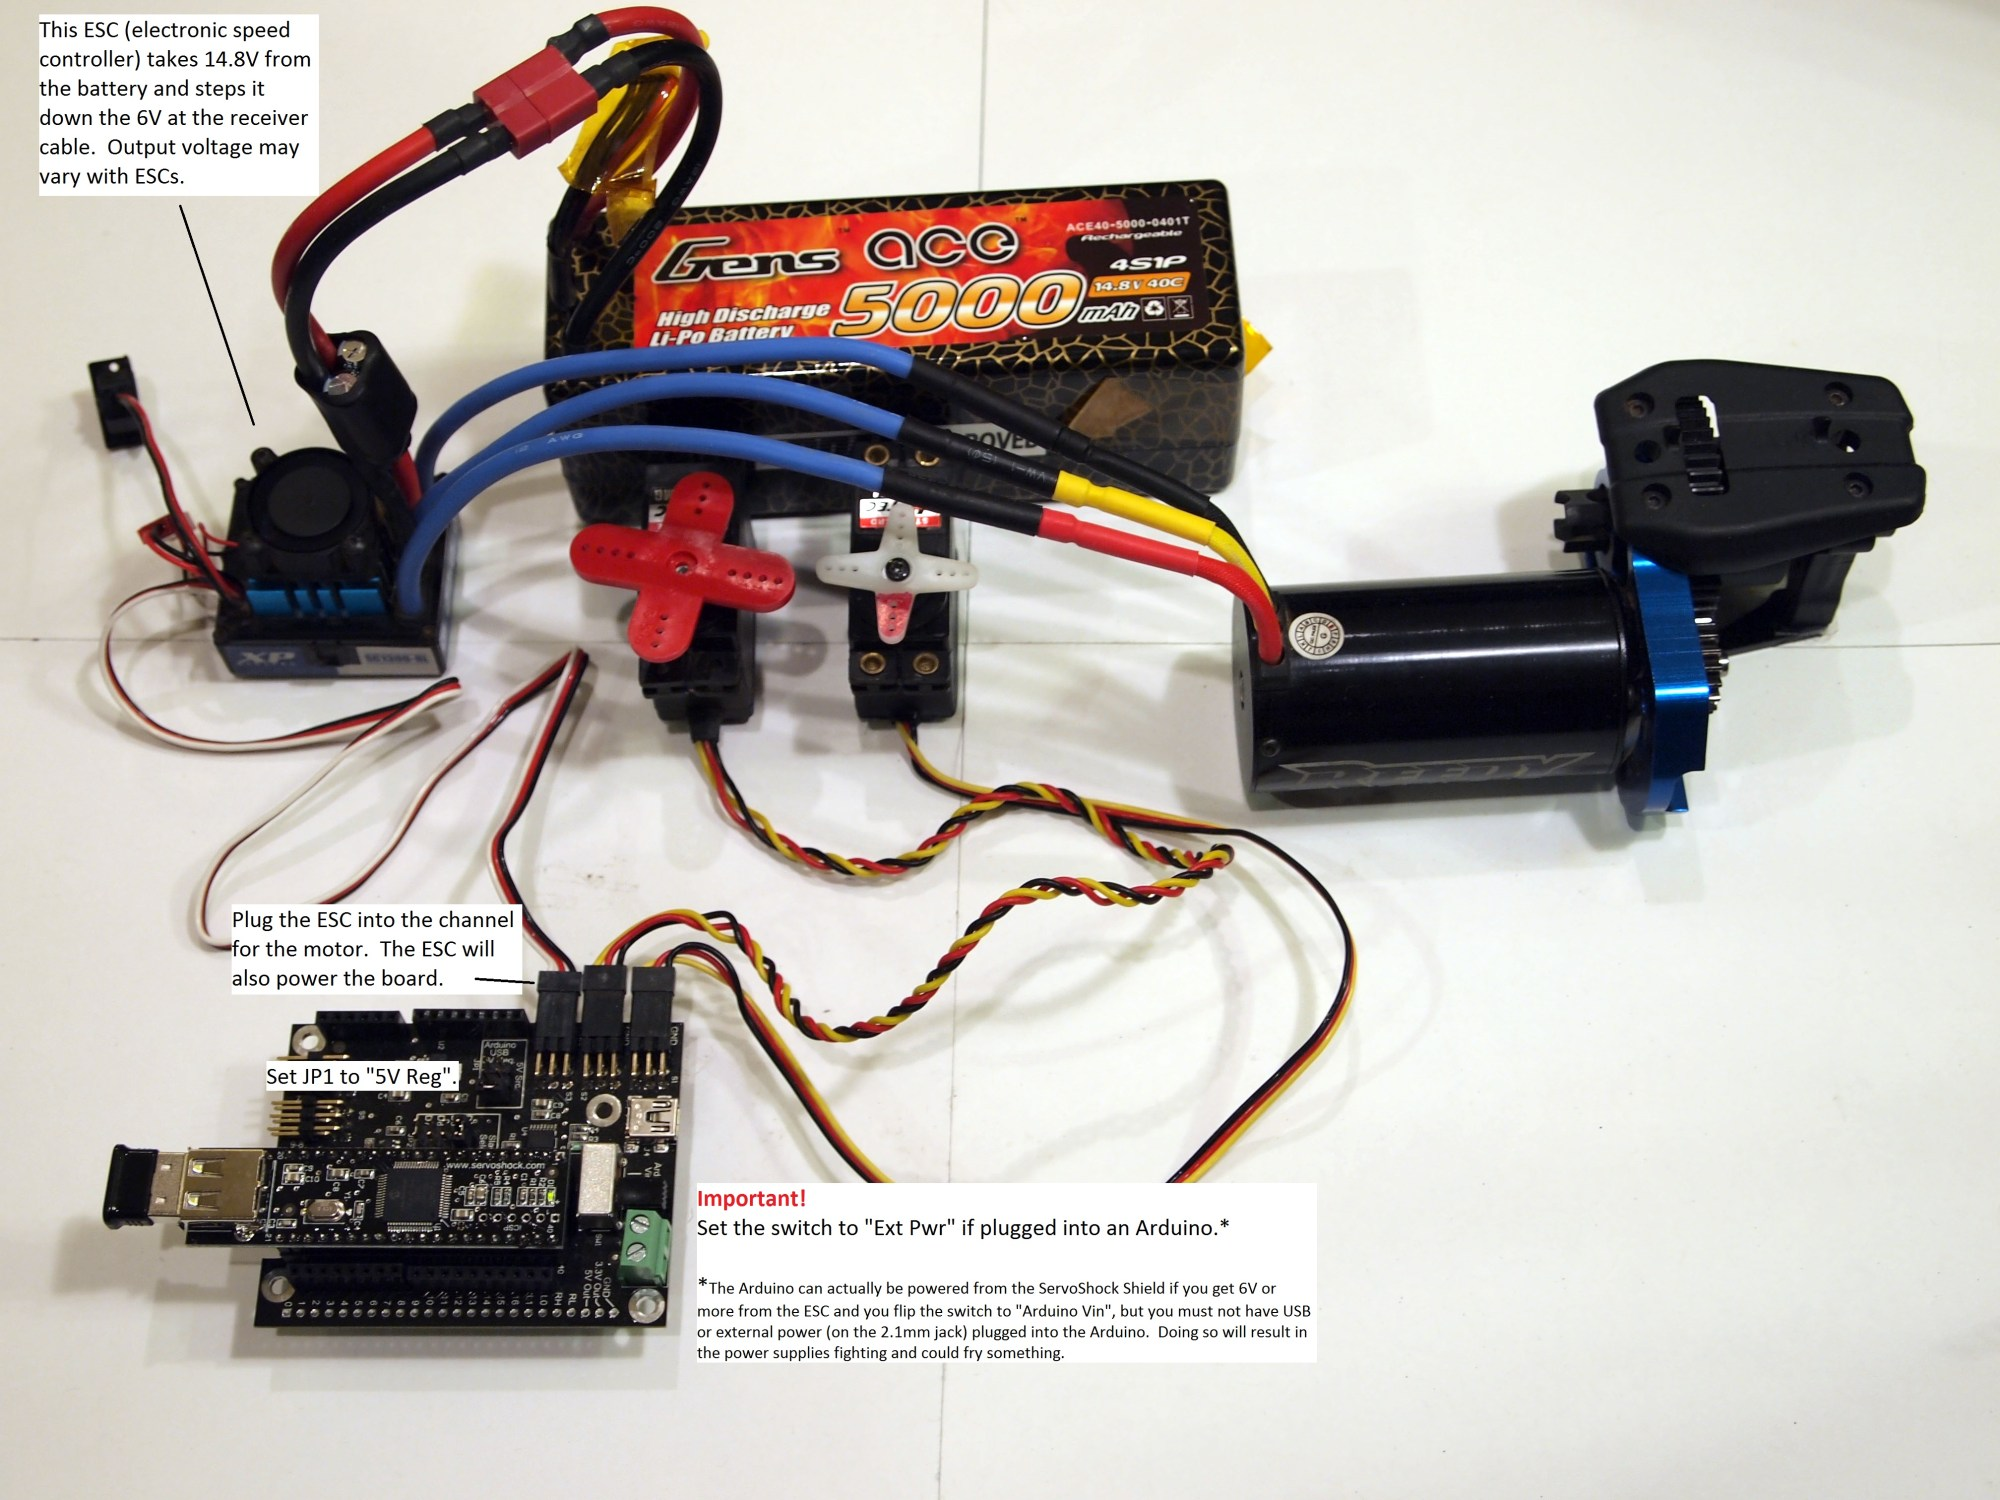 hight resolution of servoshock remote servo and i o controller by cross